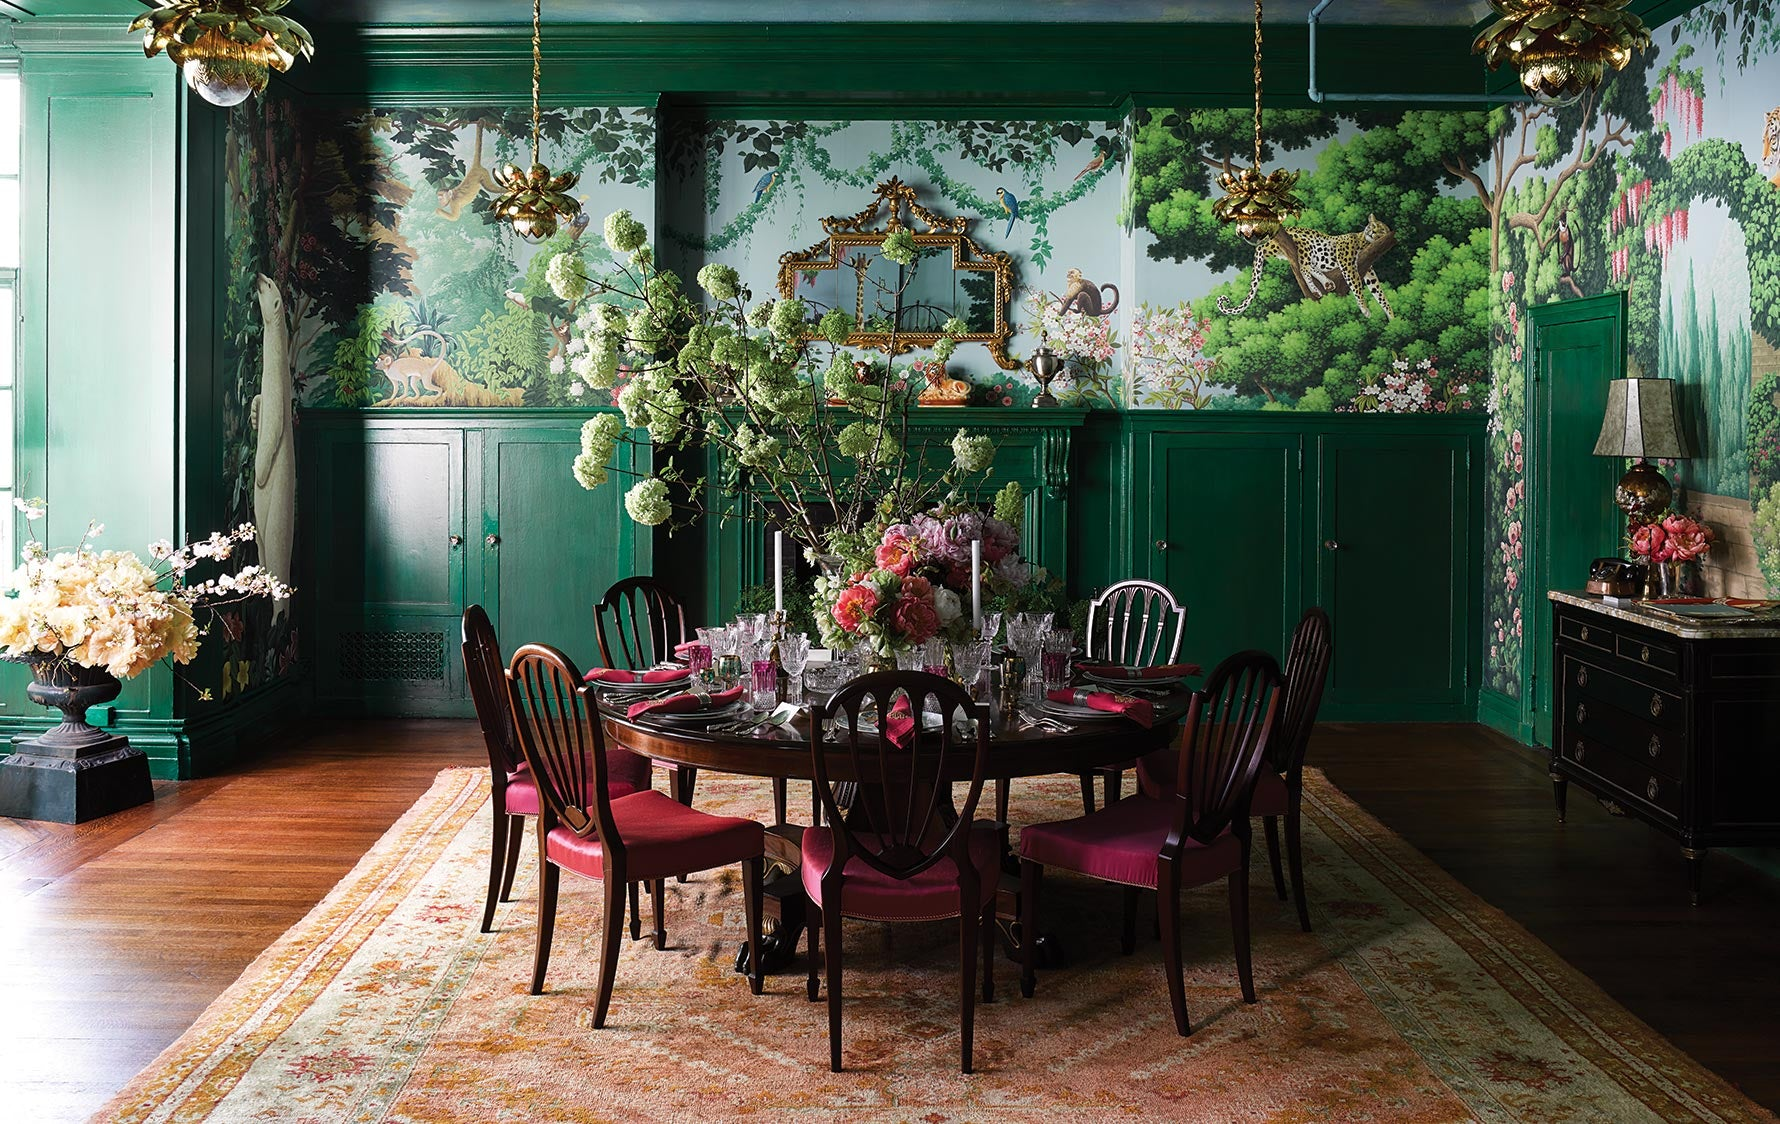 Green Interior Inspiration – Green Dining Room – Ken Fulk interiors – Kips Bay Show House – LuxDeco.com Style Guide